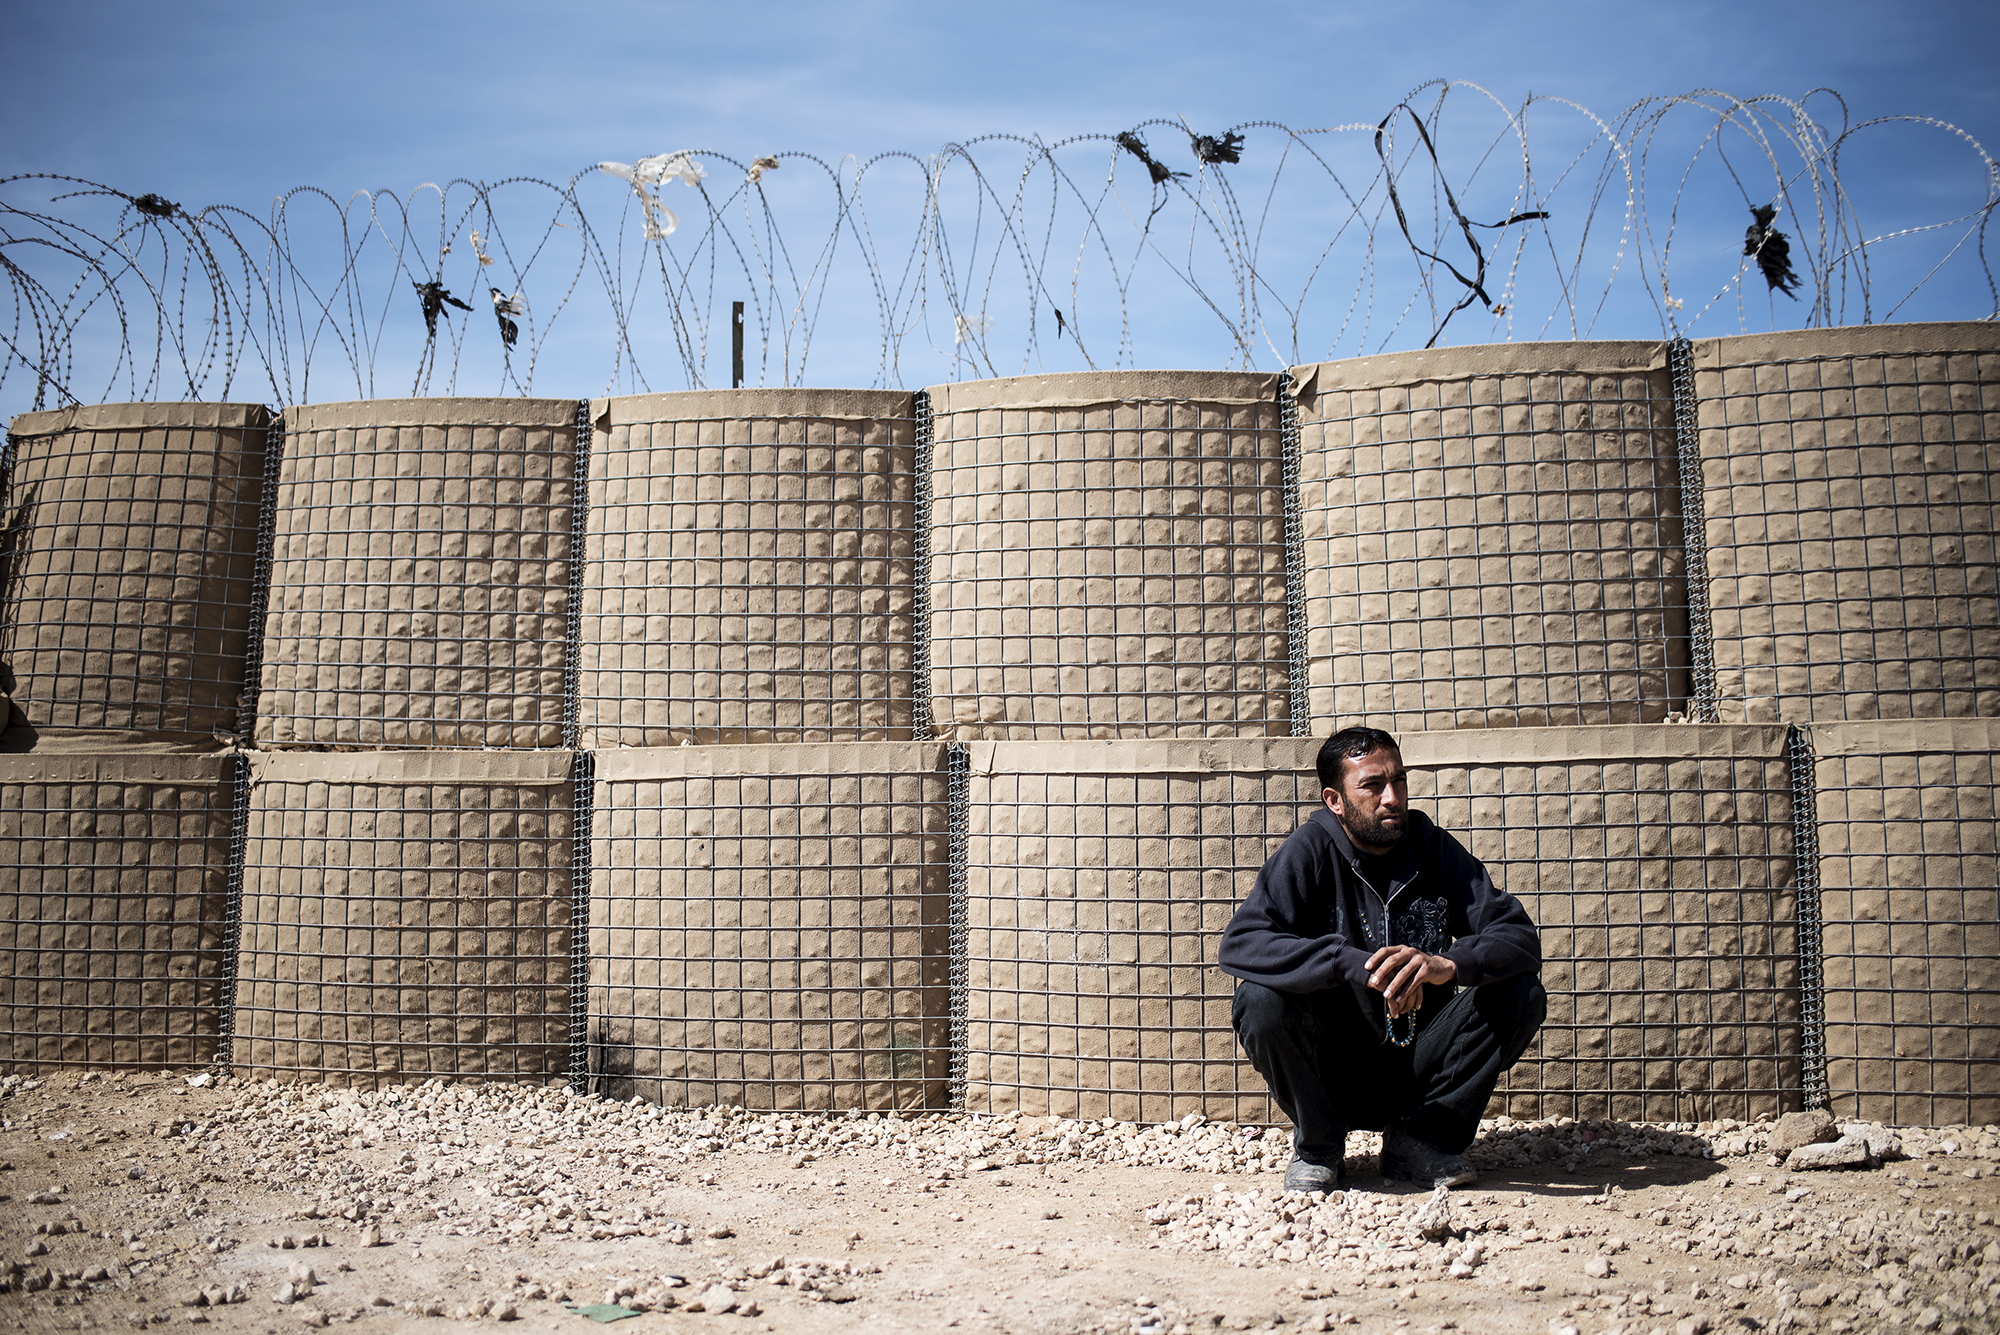 A man rests along a fence in Jordan's Zaatari refugee camp, some six miles from the country's northern city of Mafraq. February 2016.